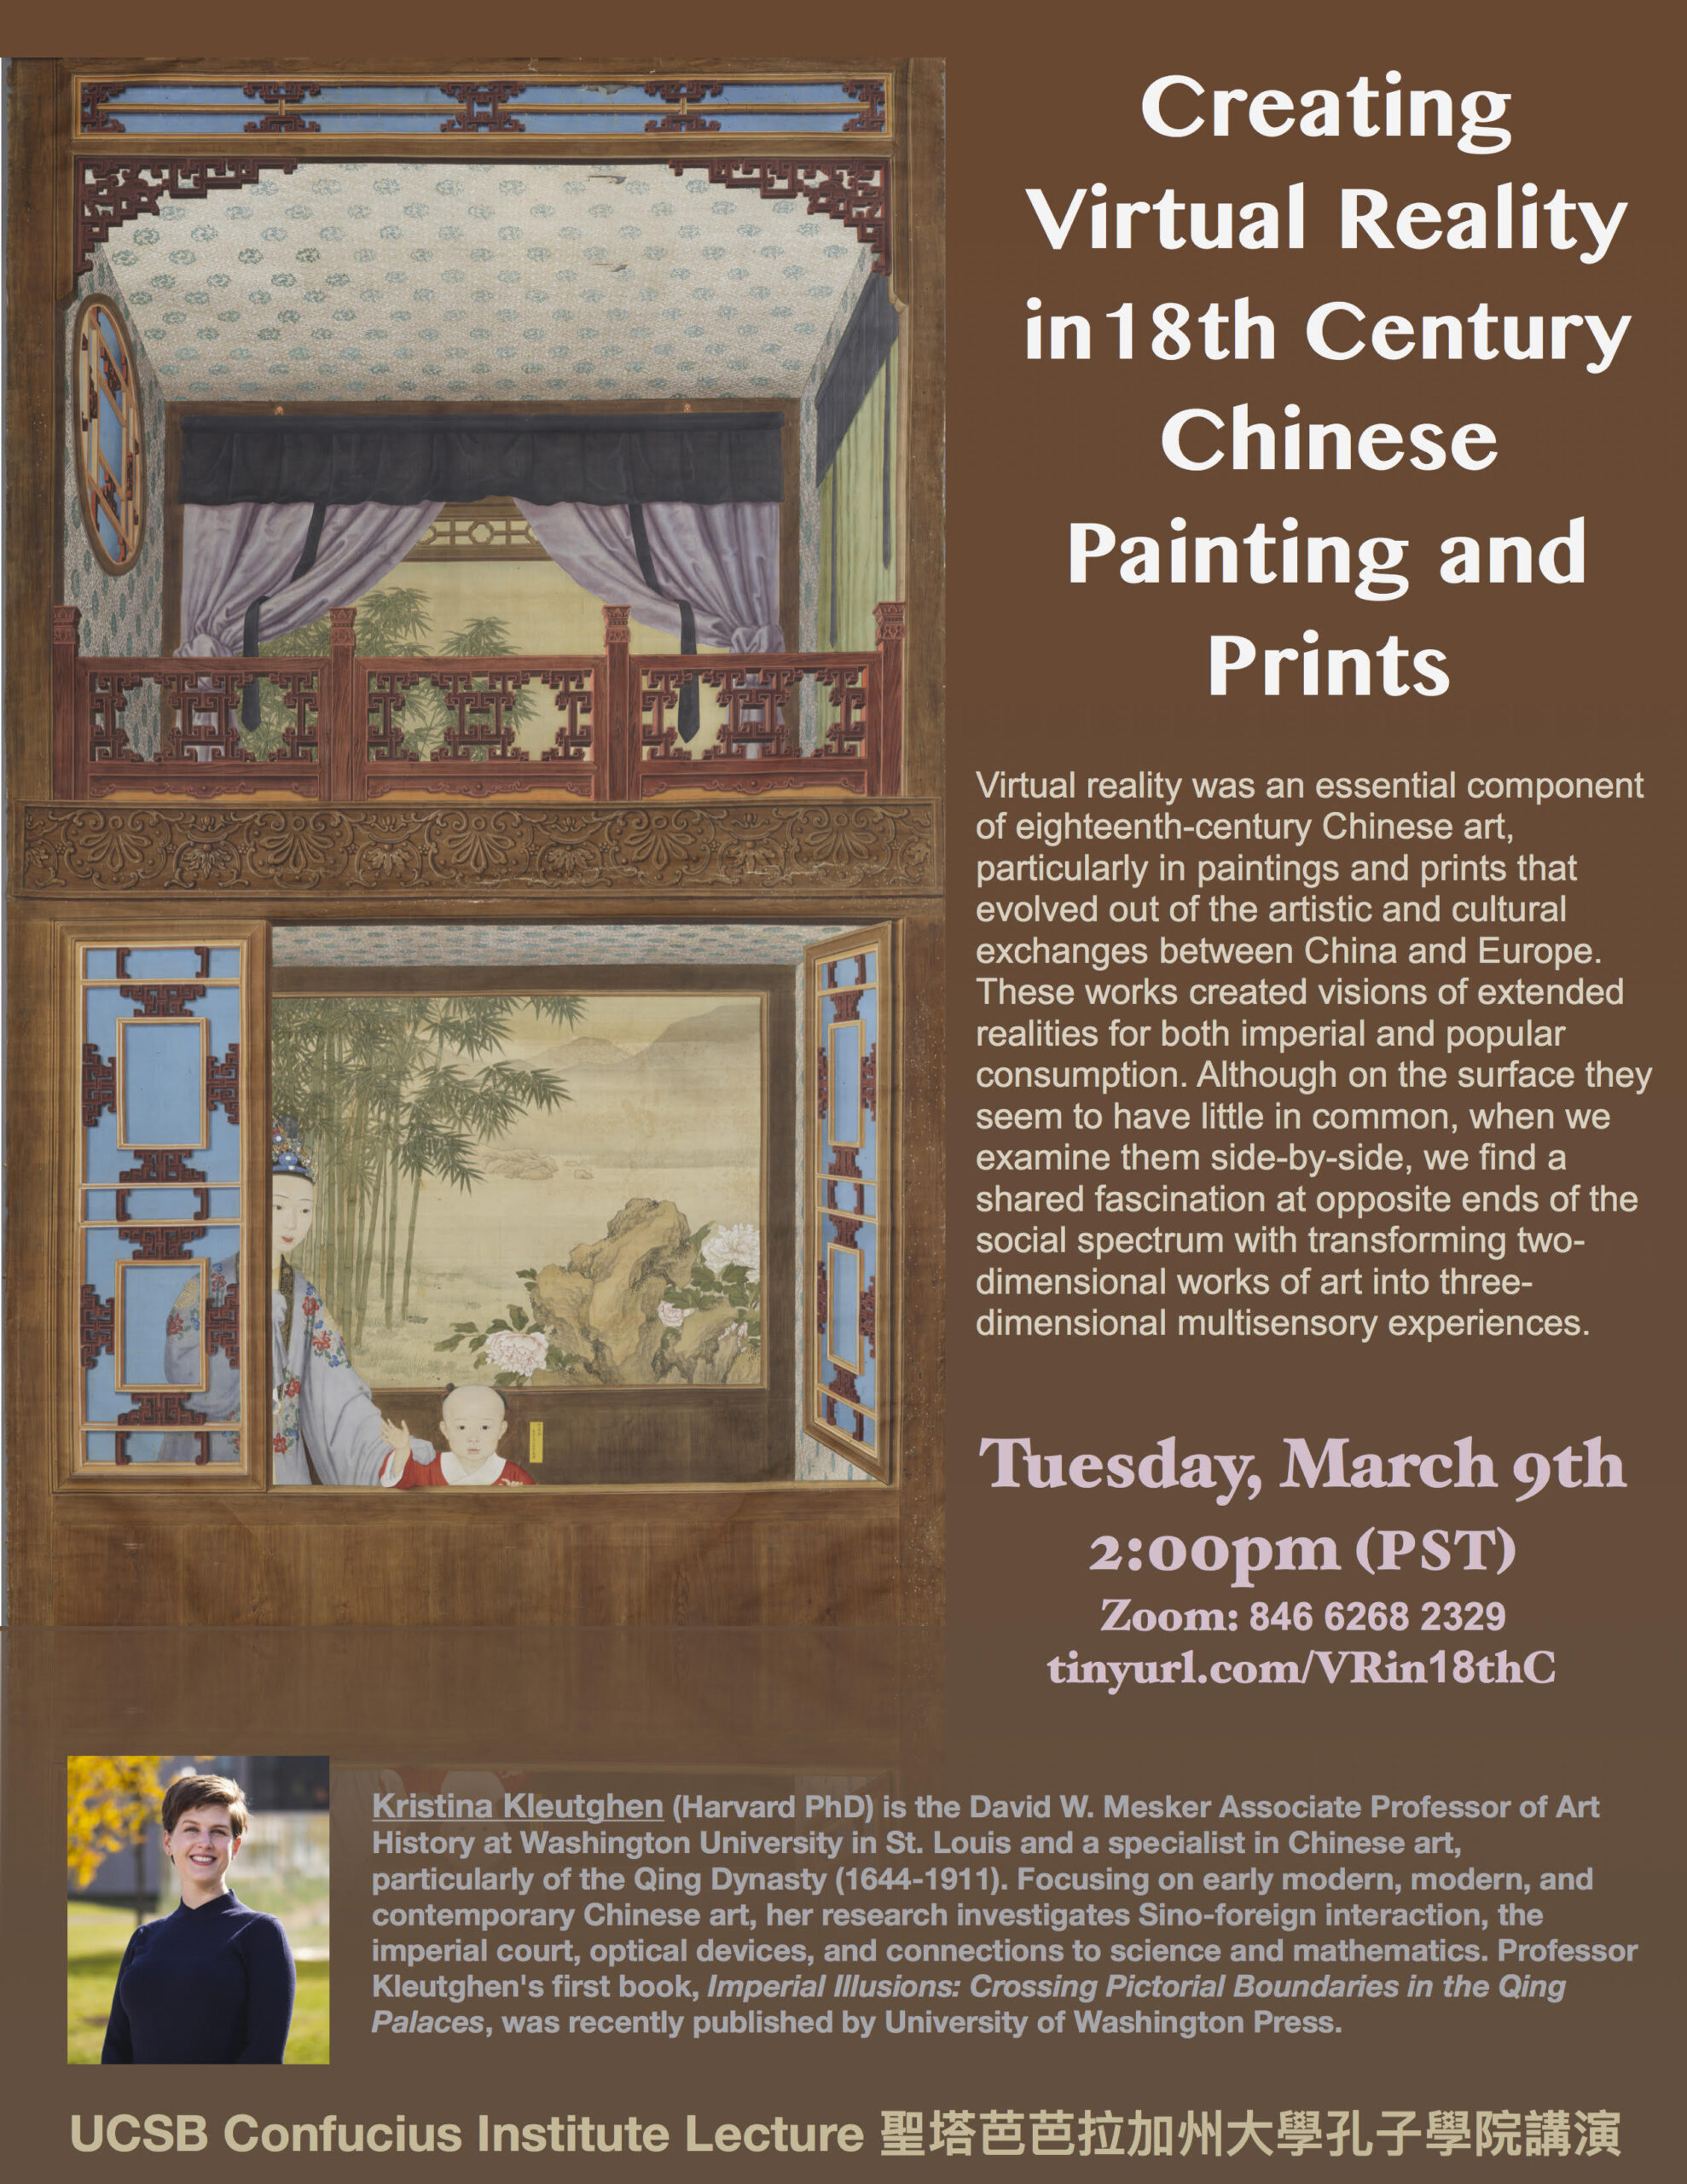 """Flyer for Zoom talk """"Creating Virtual Reality in 18th Century in 18th Century Chinese Painting and Prints"""" by Kristina Kleutghen on 3/9 at 2PM"""